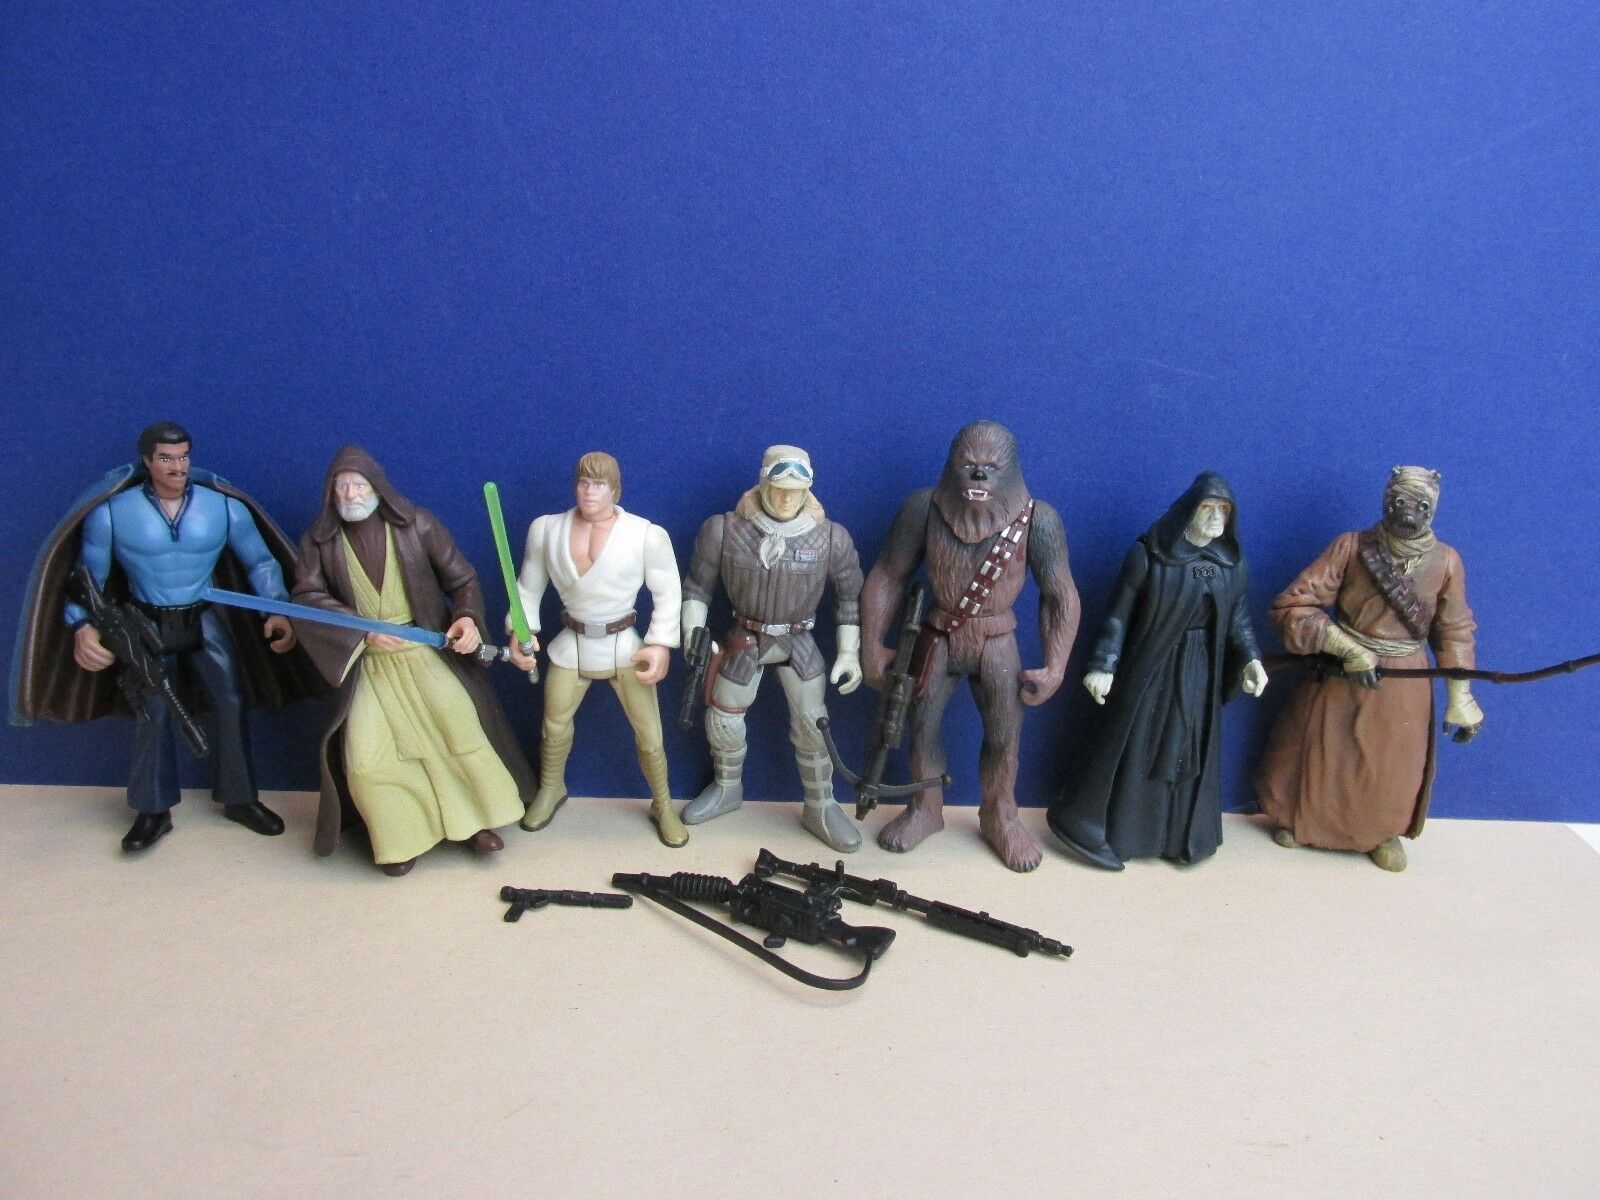 Star wars NEW HOPE potf ACTION FIGURE lot TUSKEN LUKE HAN LANDO OBI WAN 1997 G63